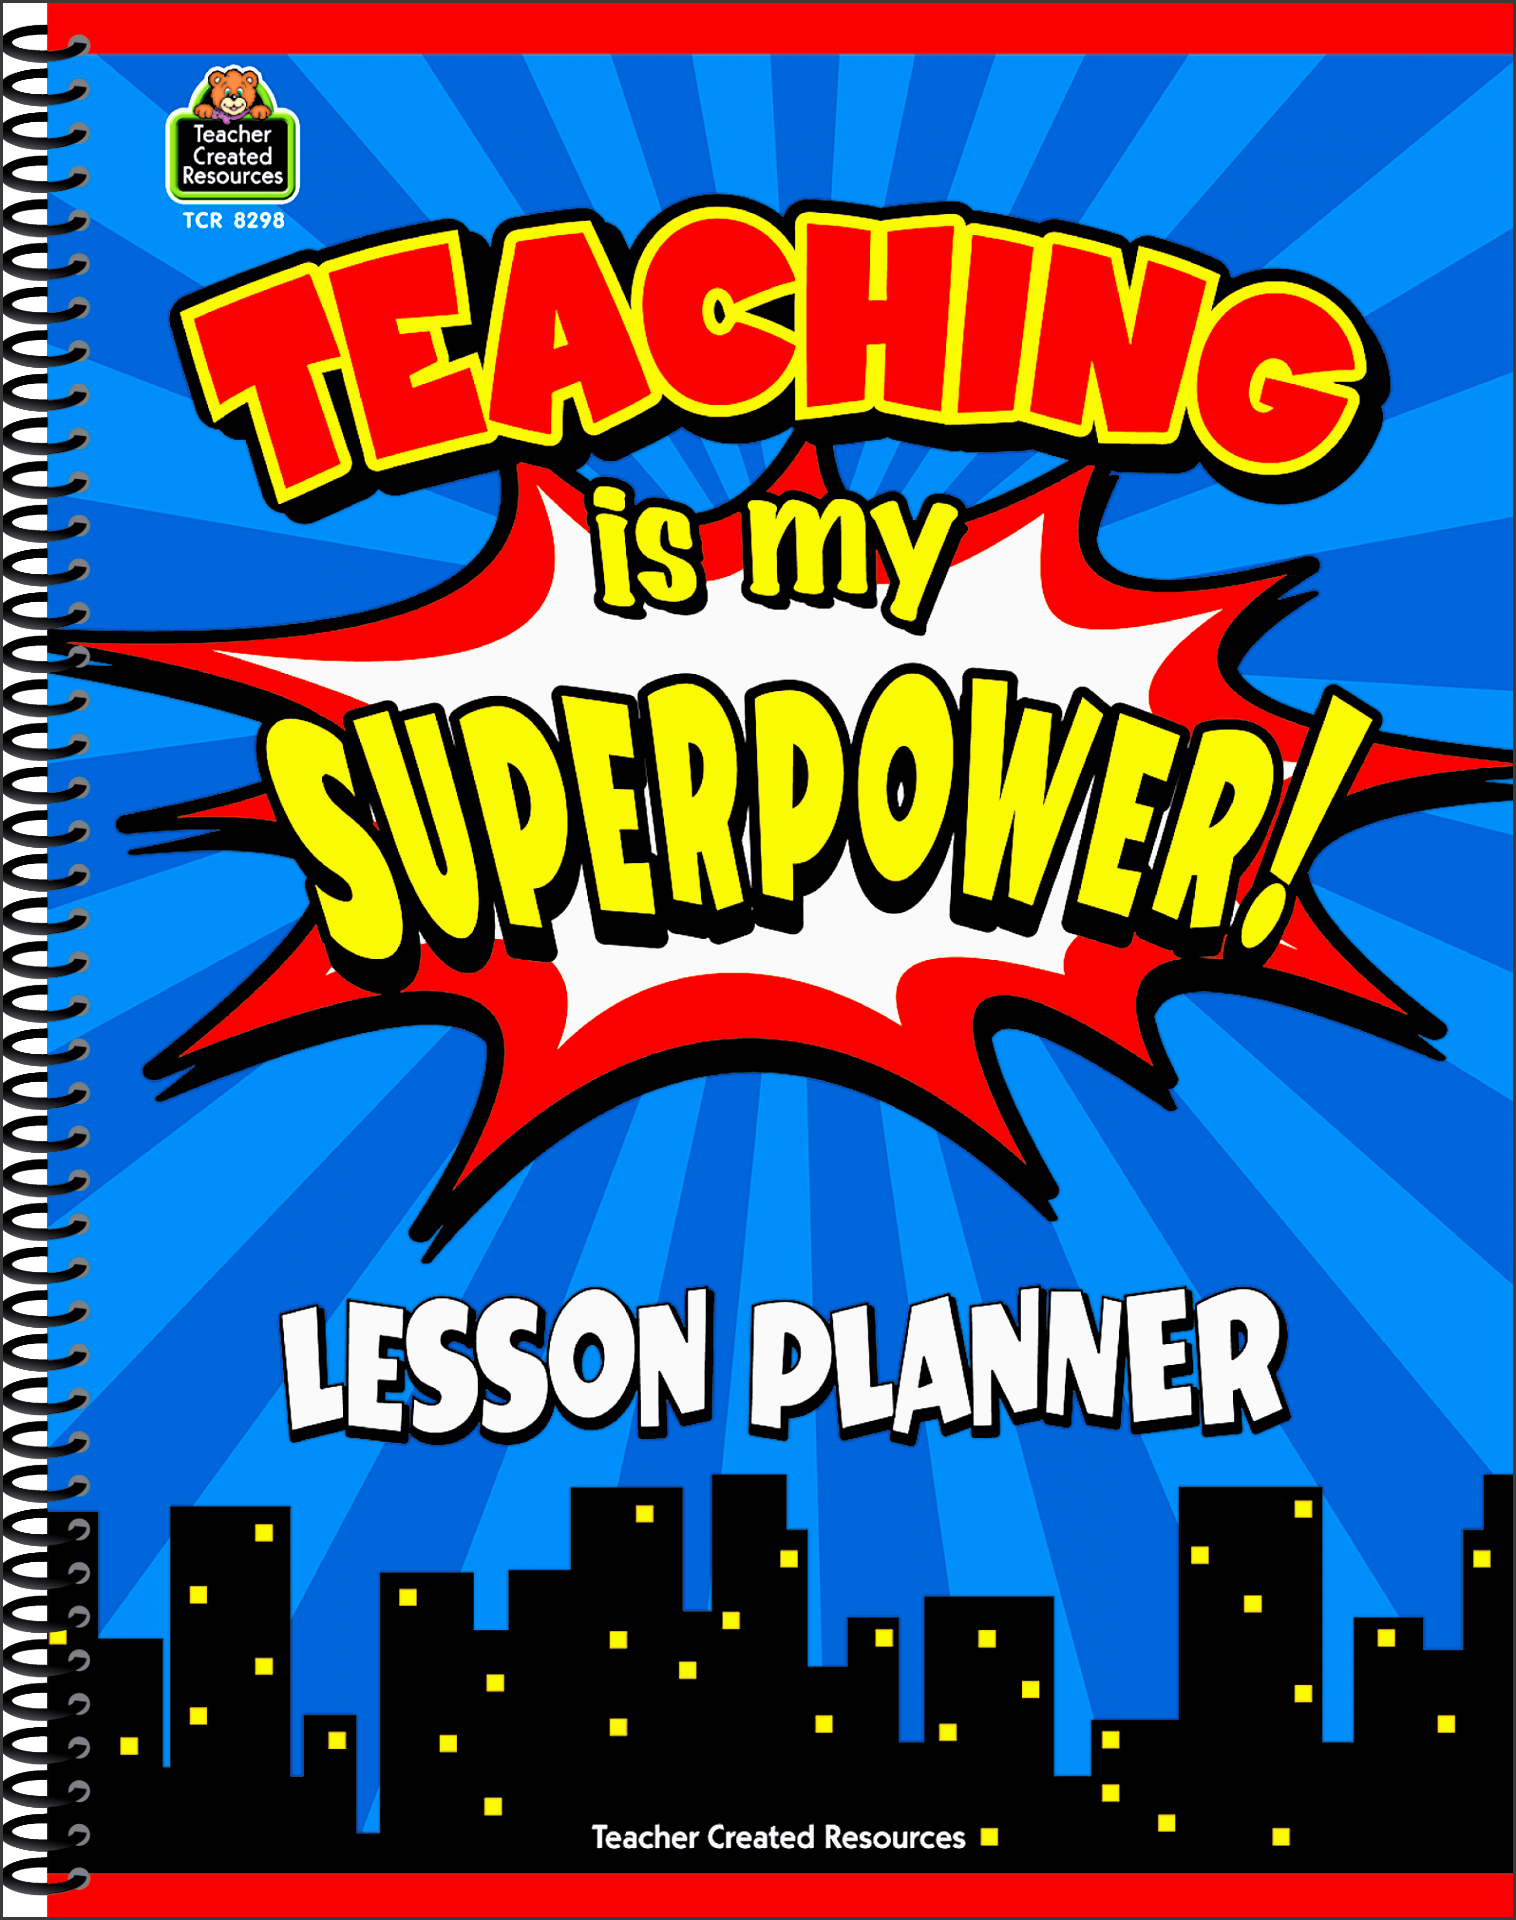 teaching is my superpower lesson planner tcr8298 teacher created resources